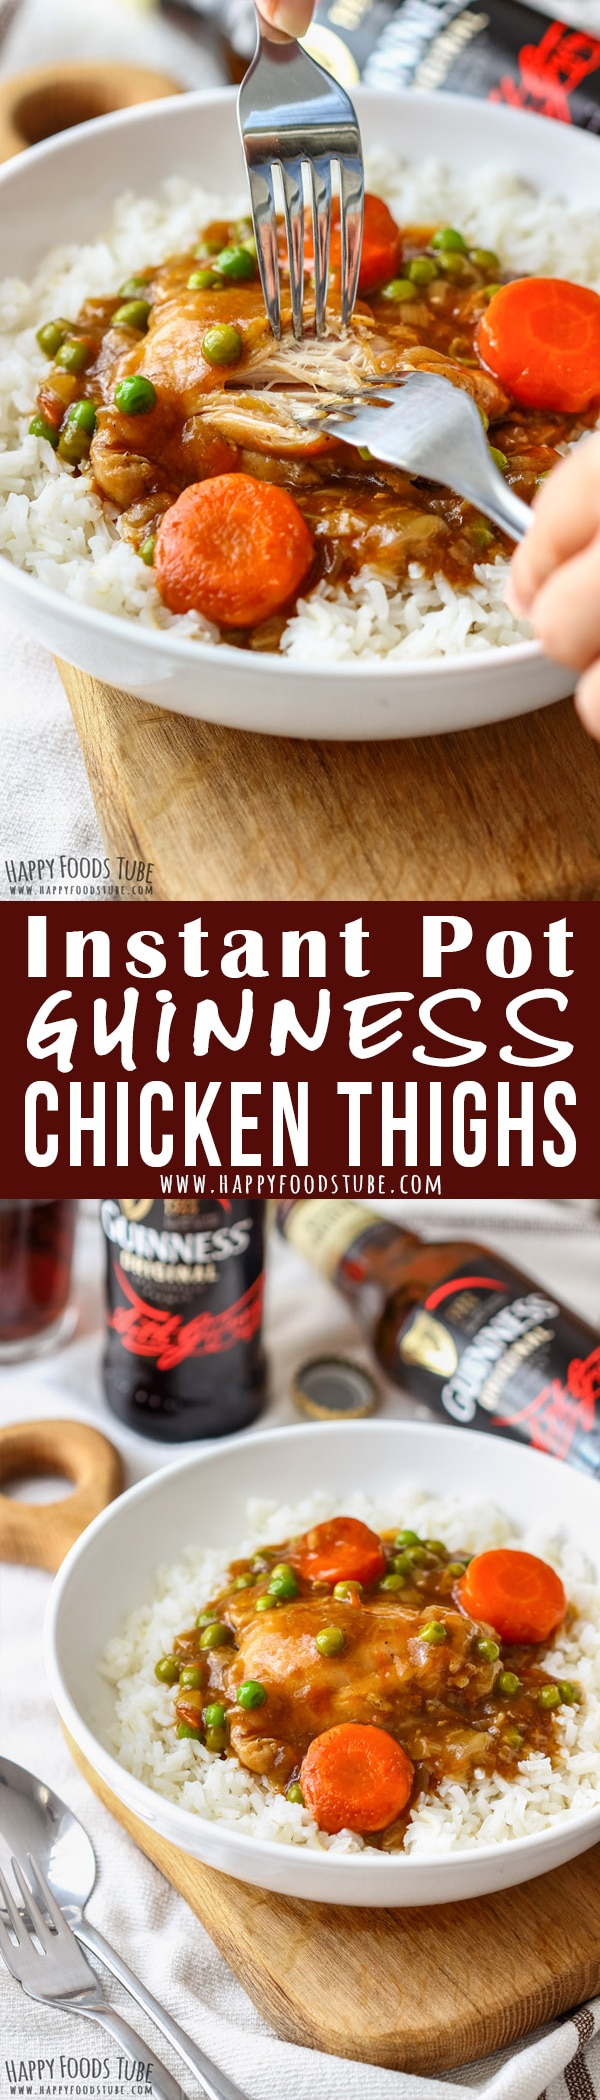 Instant Pot Guinness Chicken Thighs are the perfect weeknight dinner recipe. Juicy, easily pulled chicken cooked in Guinness flavored sauce can be served with rice or mashed potatoes. #chicken #thighs #guinness #instantpot #recipe #pressurecooker #comfortfood #dinner #lunch #cooking #howtocook